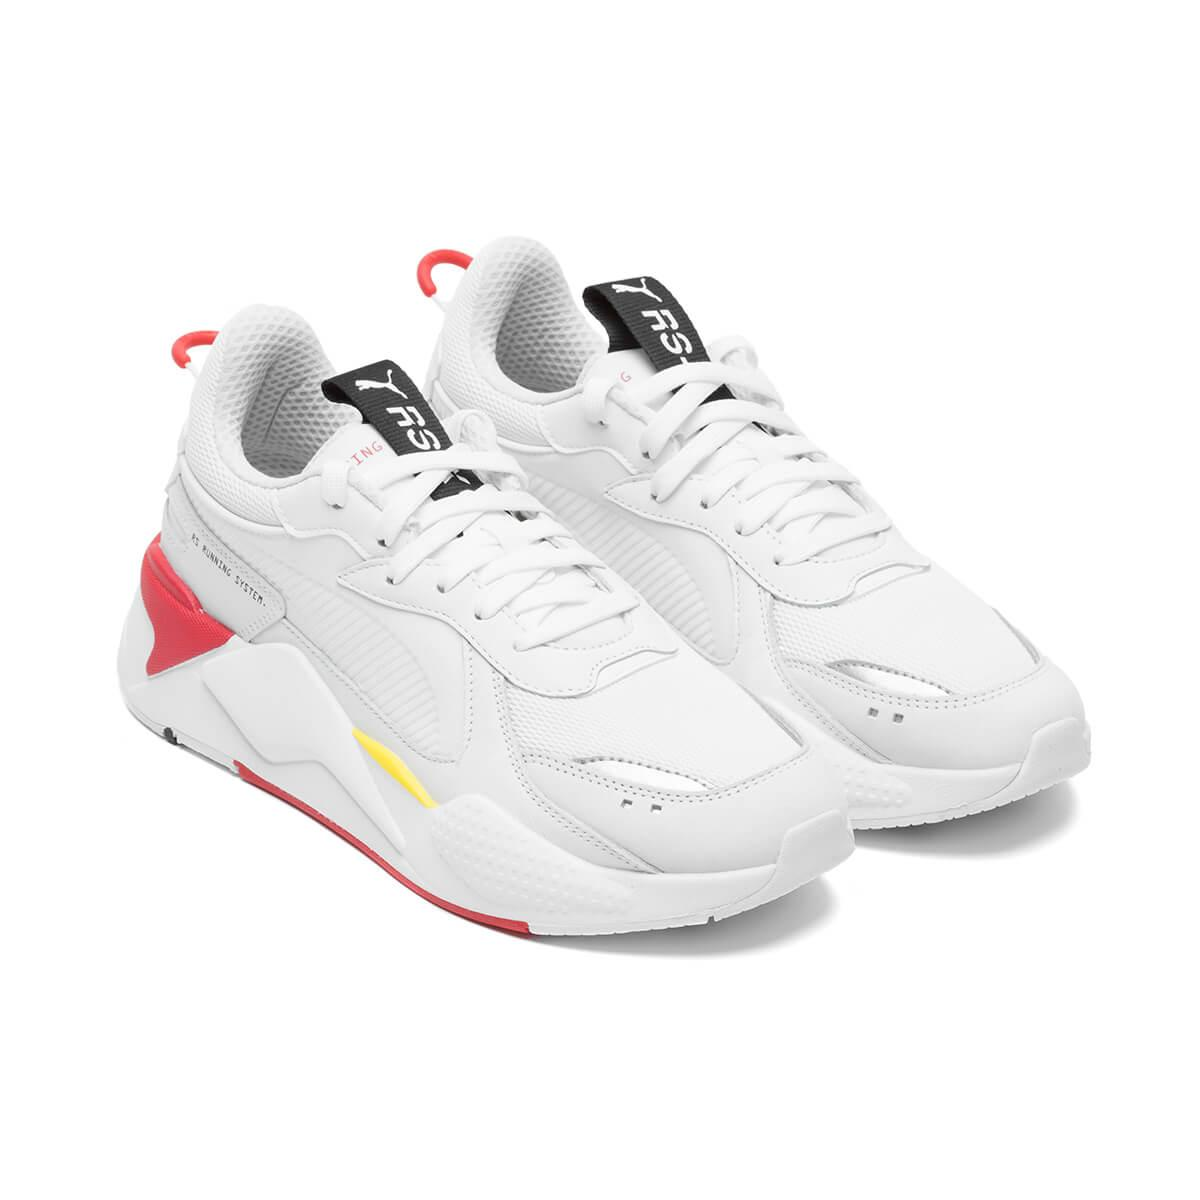 5703d5de309 PUMA - White Sf Rs-x Trophy Sneakers for Men - Lyst. View fullscreen